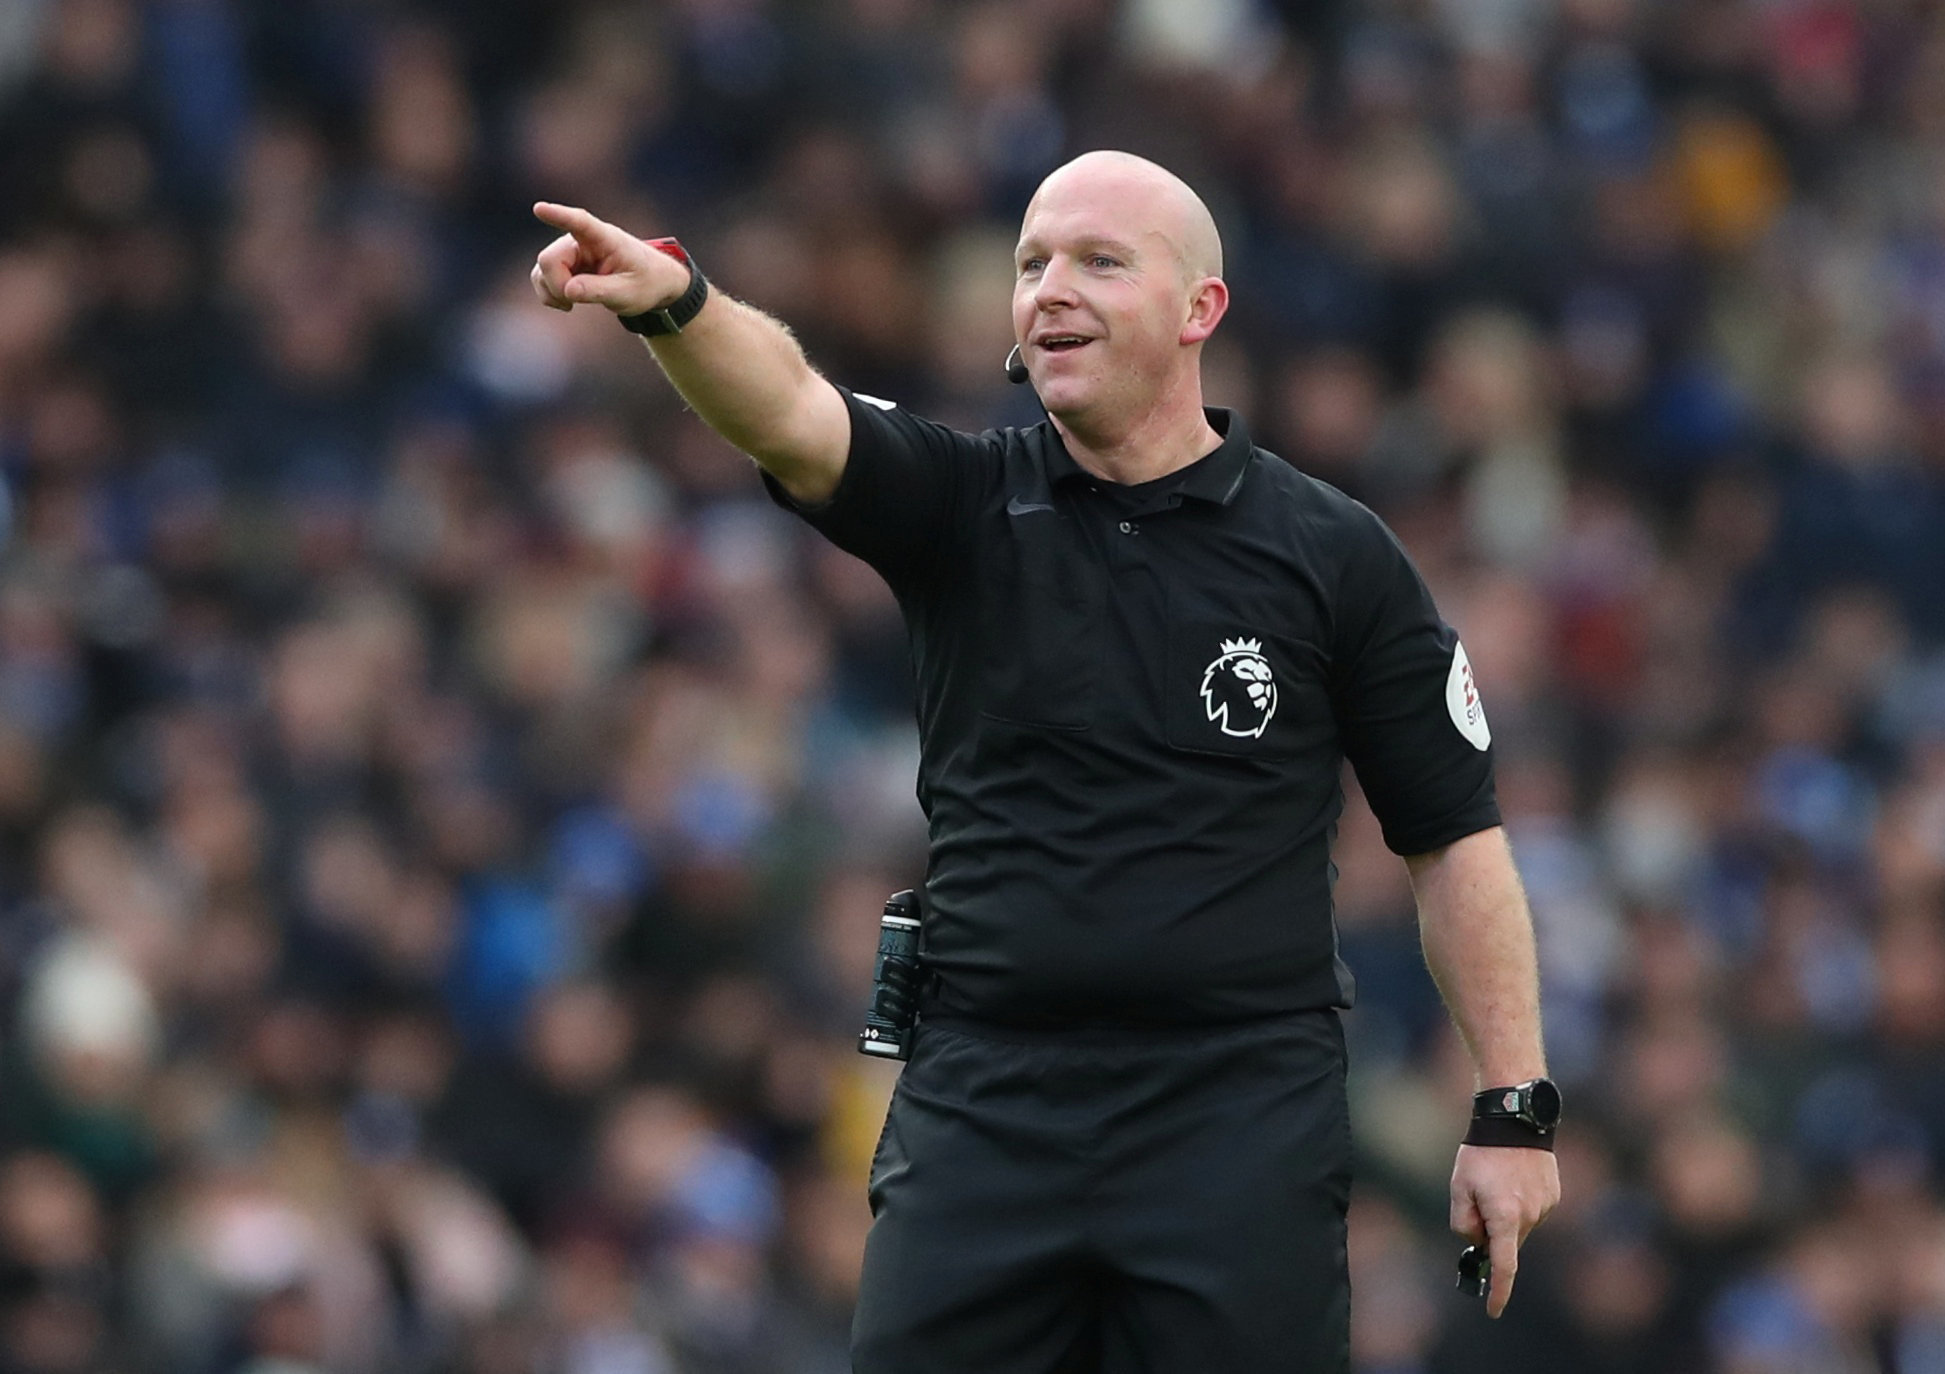 Simon Hooper will officiate Watford's game against Wolverhampton Wanderers this weekend. Picture: Action Images